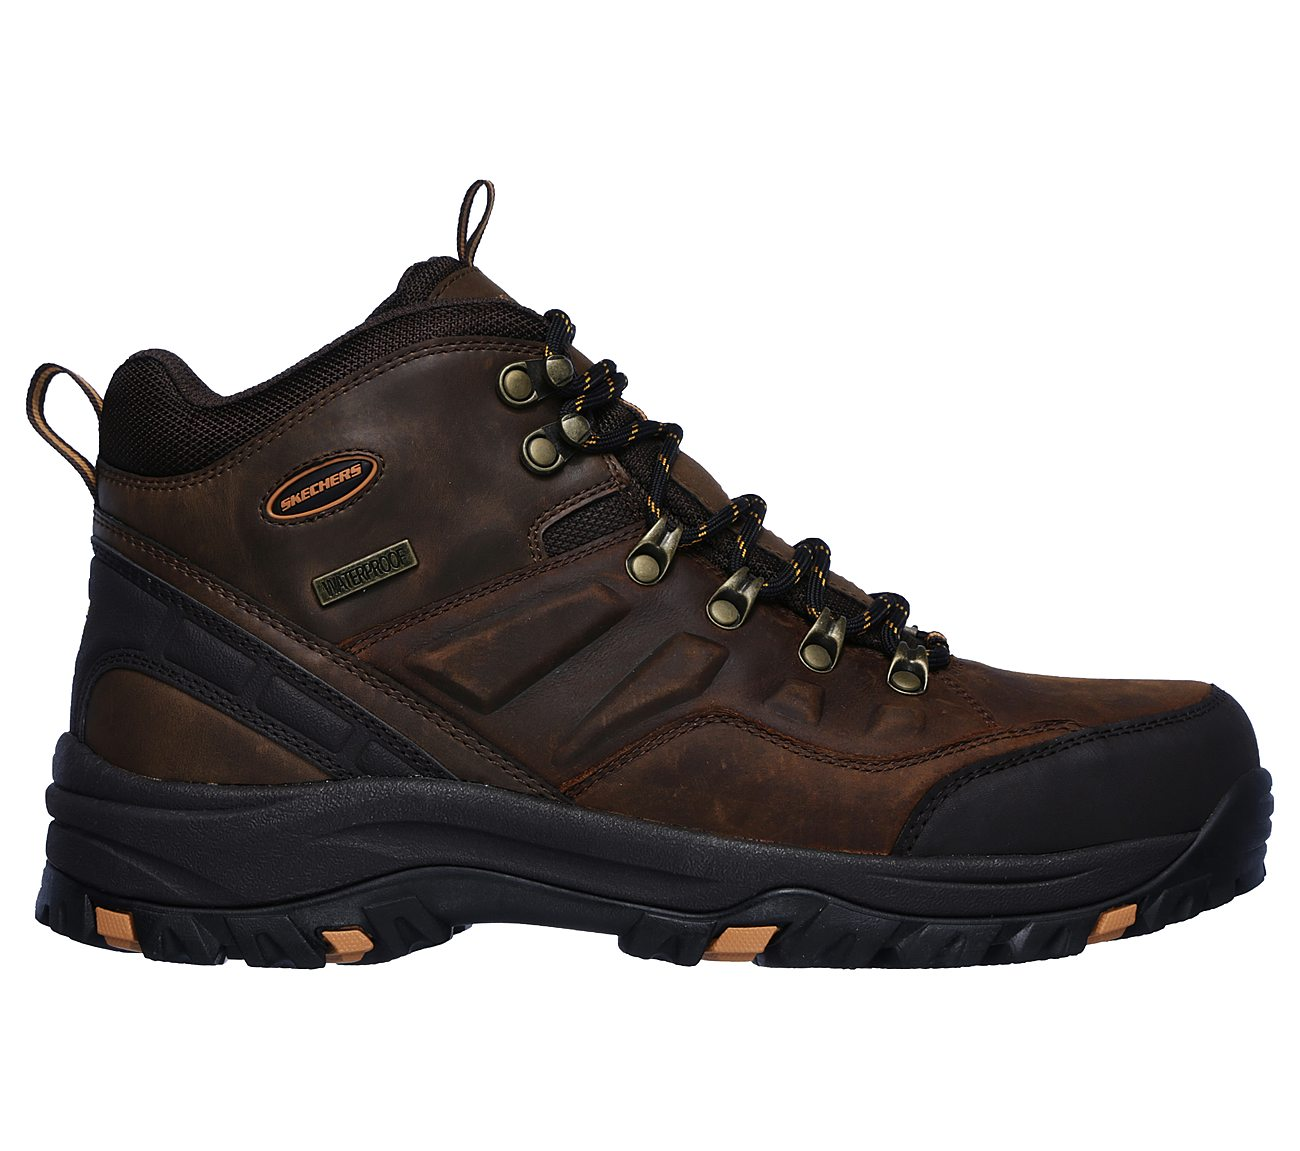 0afe4440dc829 Buy SKECHERS Relaxed Fit: Relment - Traven USA Casuals Shoes only $90.00